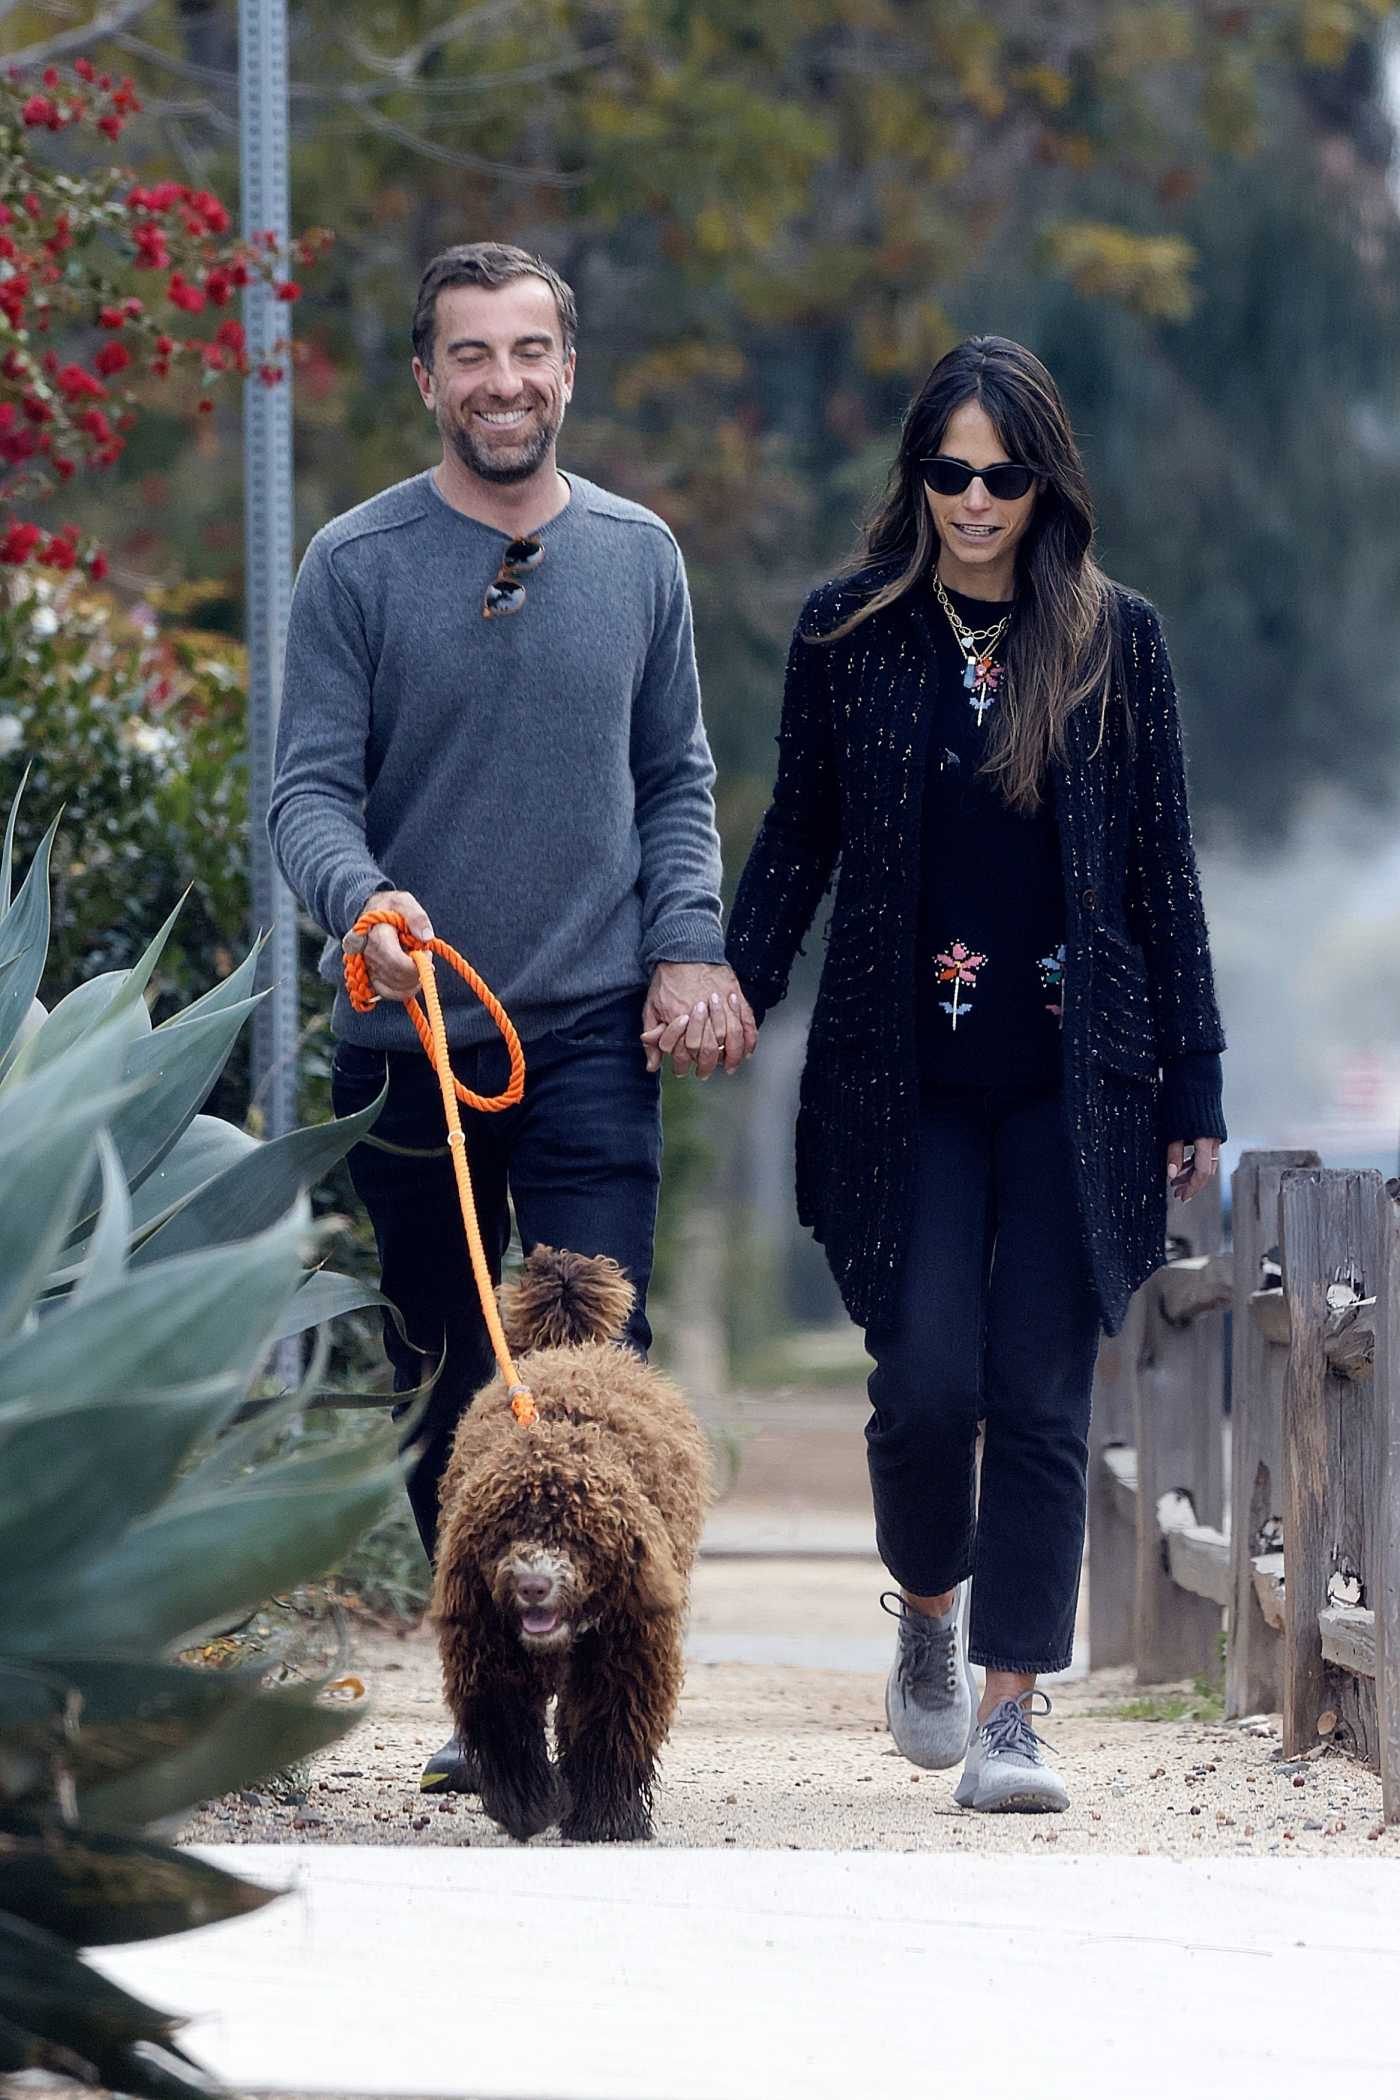 Jordana Brewster in a Black Cardigan Goes for a Walk with Her Boyfriend Mason Morfit and His Dog in Los Angeles 01/05/2021